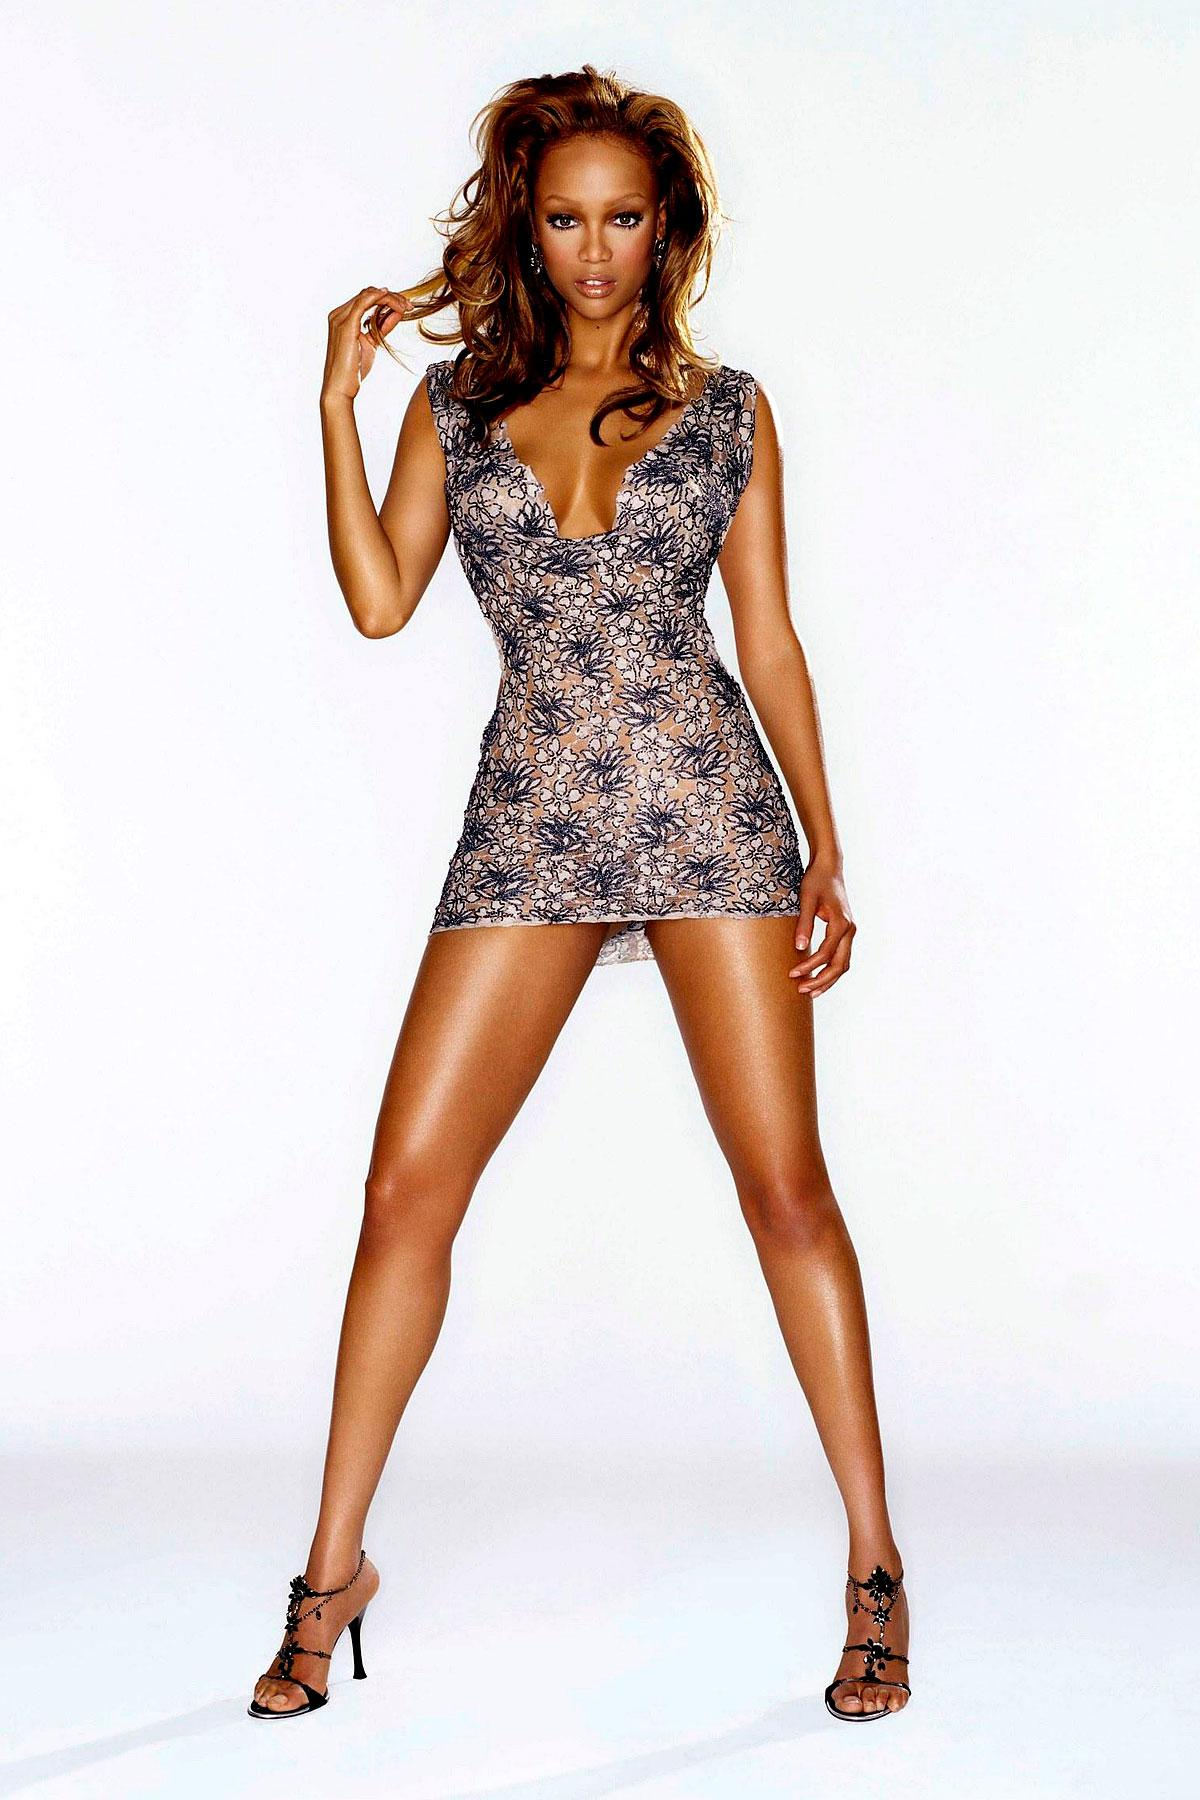 Tyra banks all nude in stello jumpsuit and studded nova slingbacks